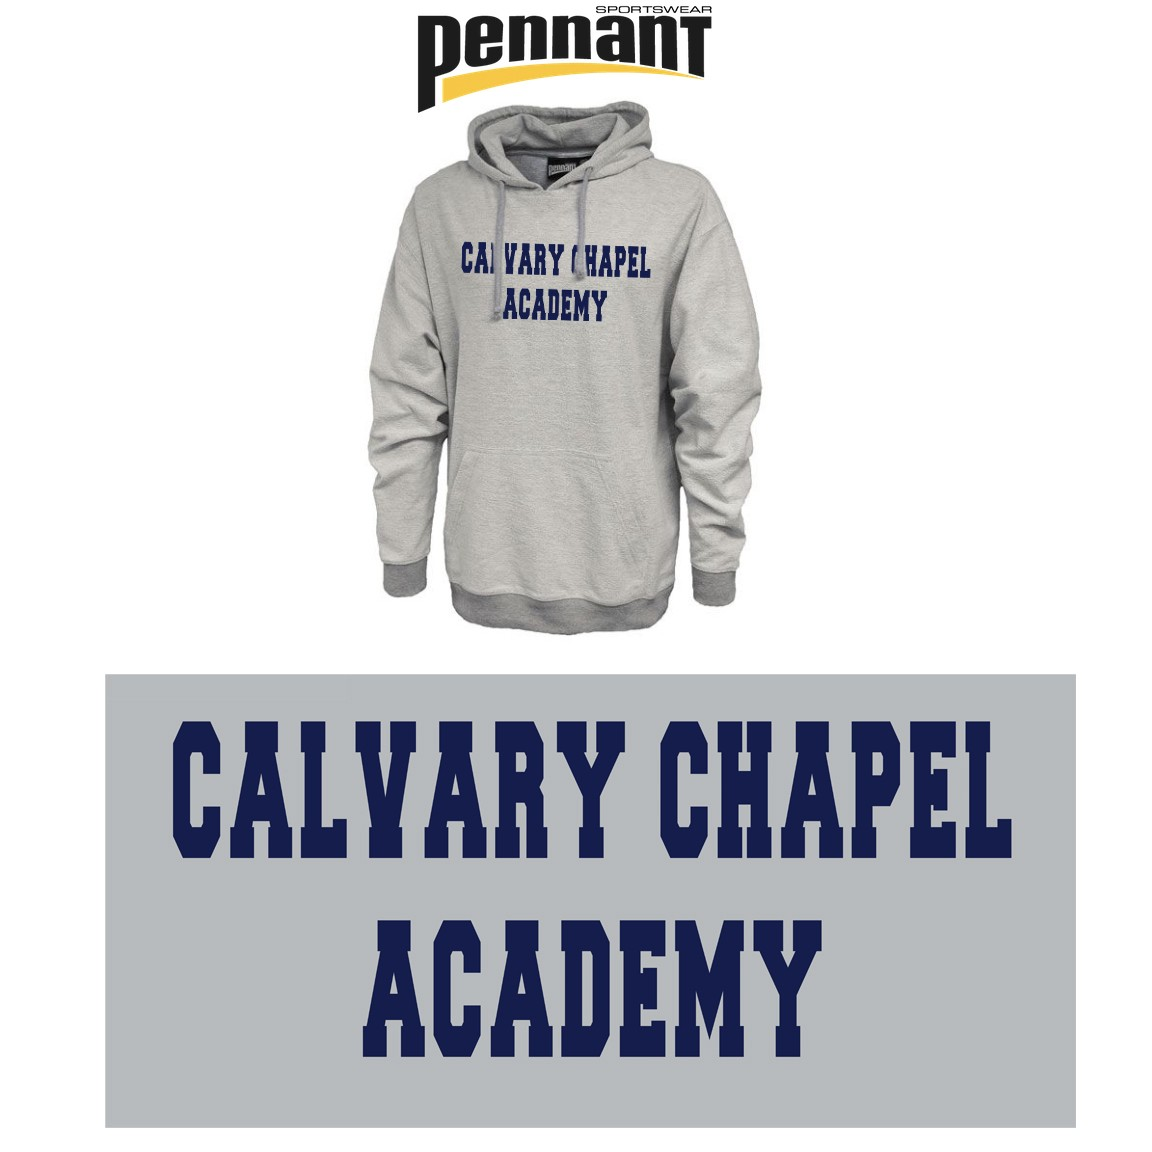 Calvary Chapel Academy Pennant Sportswear Inside-Out Hoodie, Unisex Adult